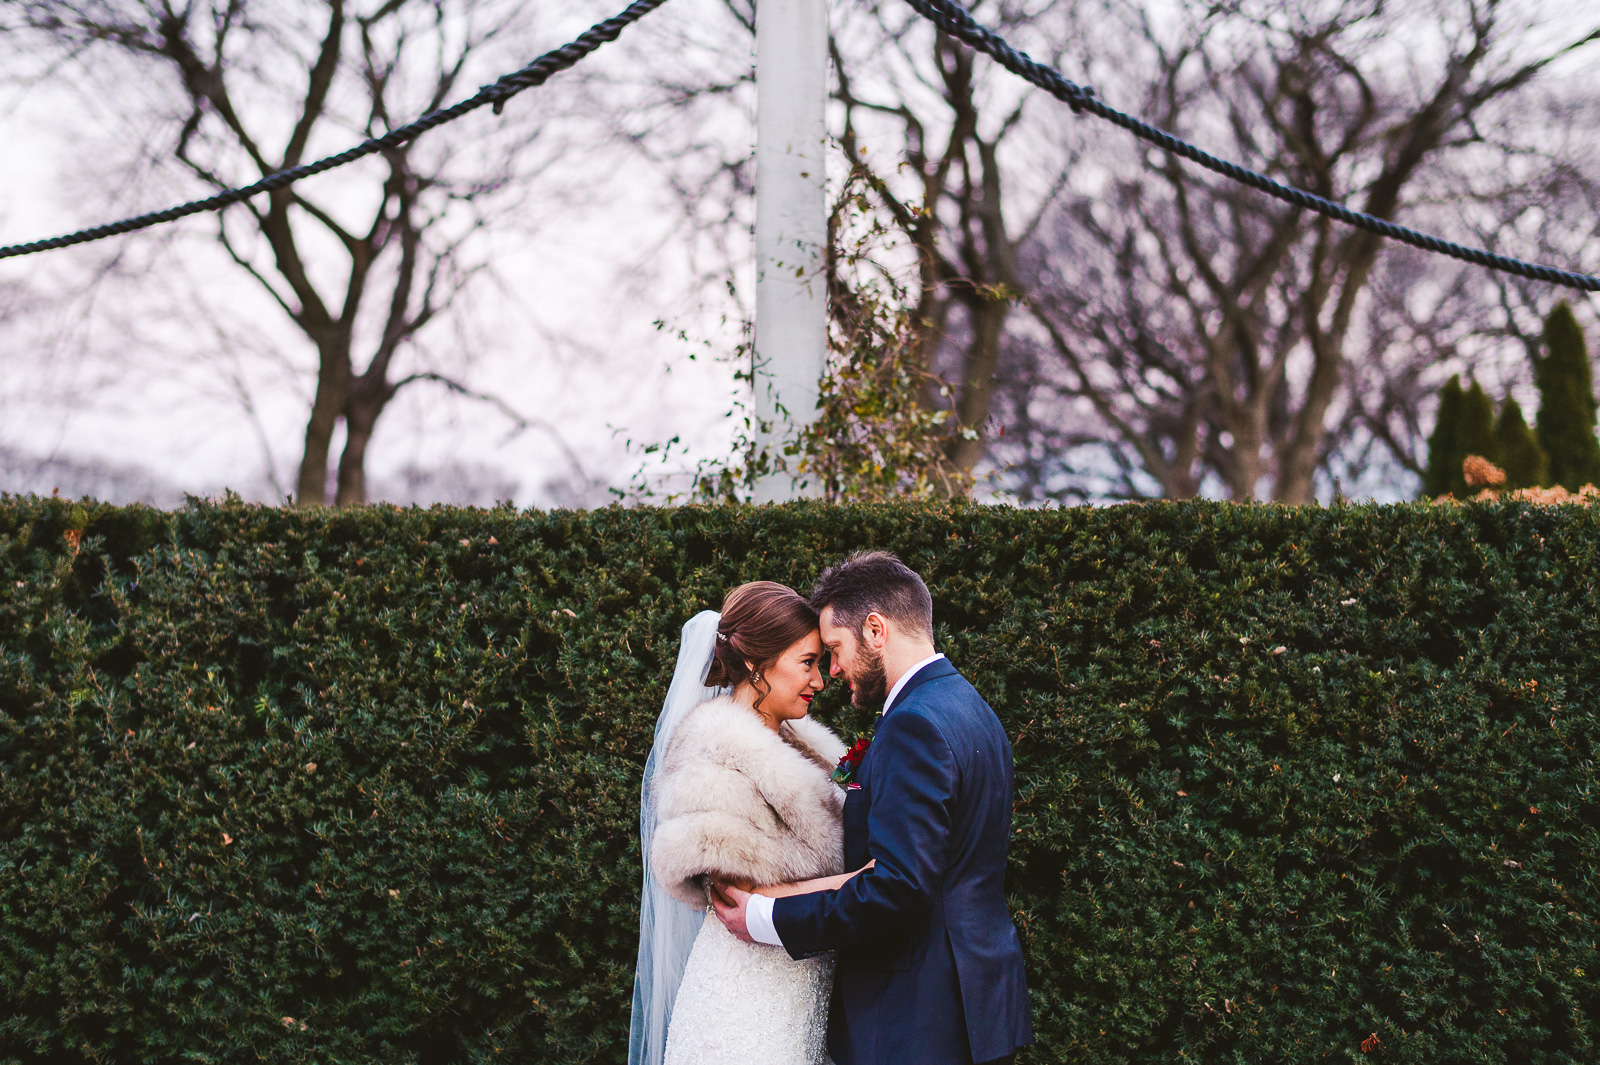 142 chicago wedding photographer best portraits during weddings review - 2018 in Review // My Favorite Chicago Wedding Photography Portraits